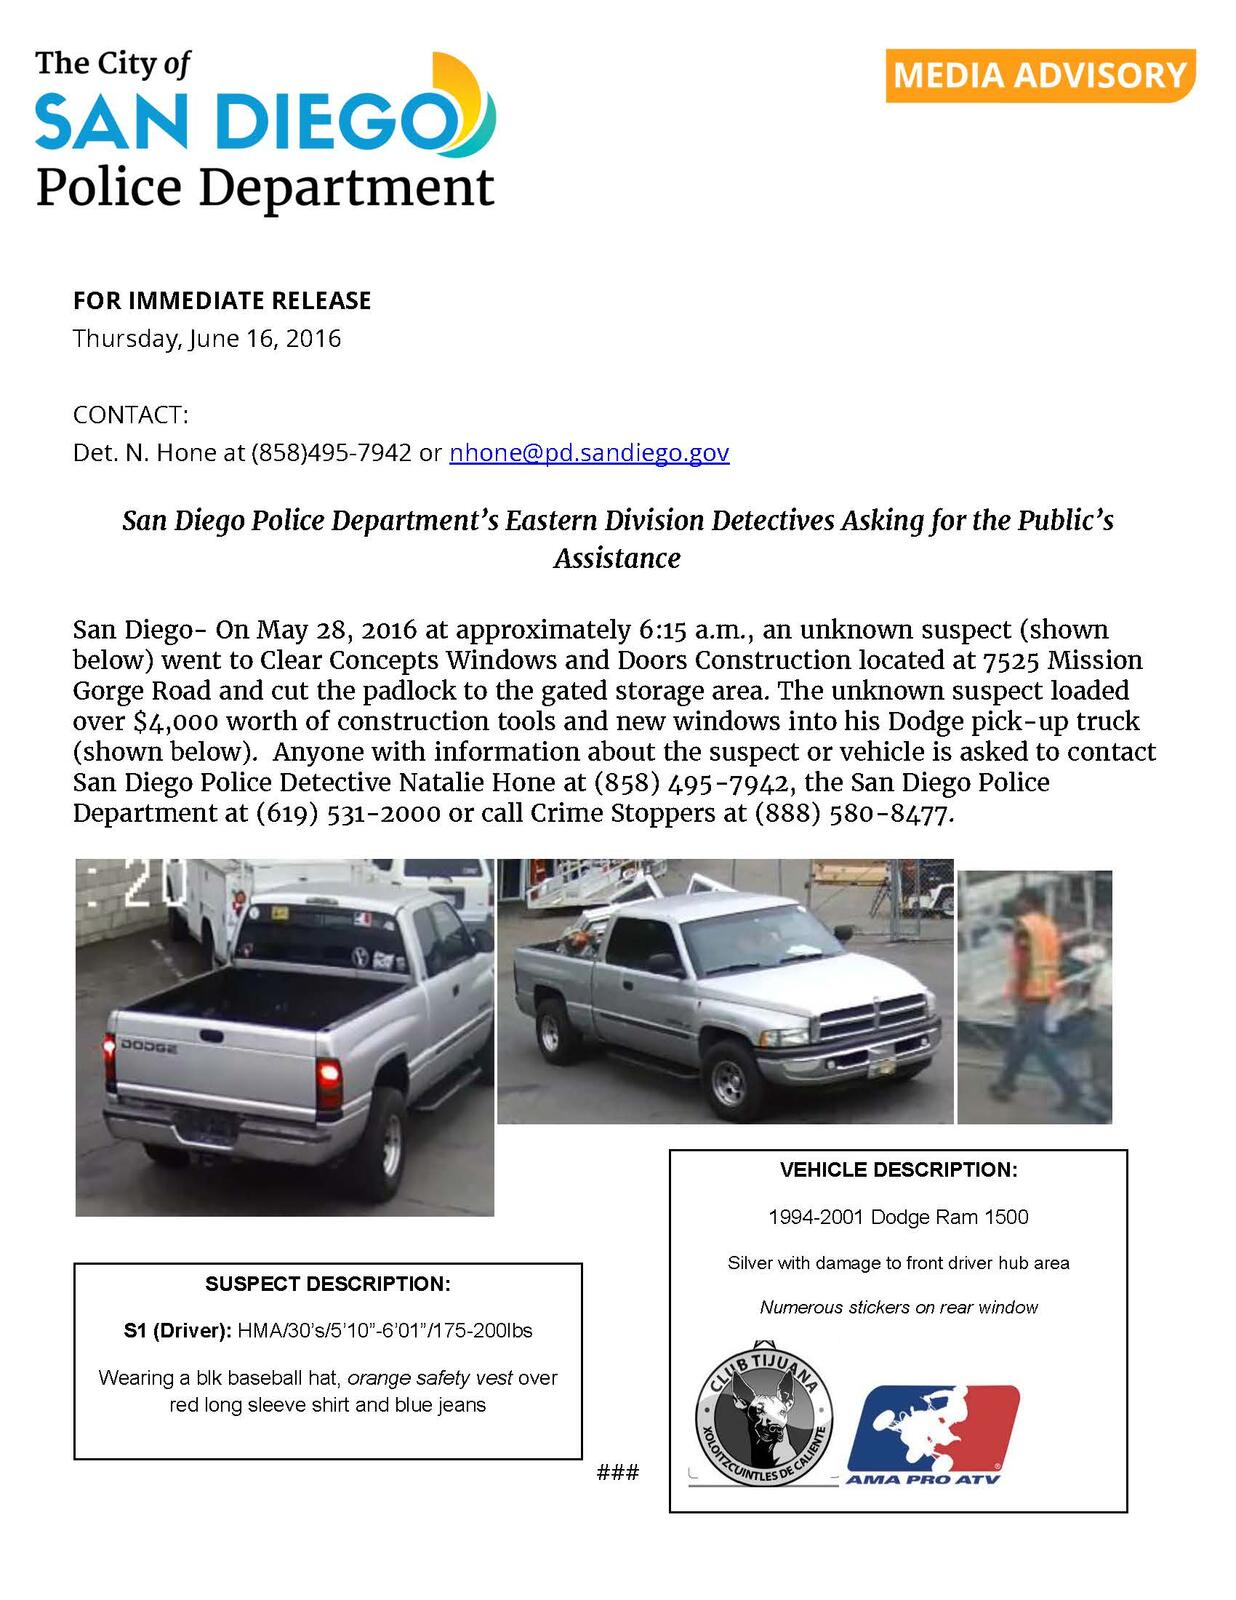 San Diego Police Department's Eastern Division Detectives